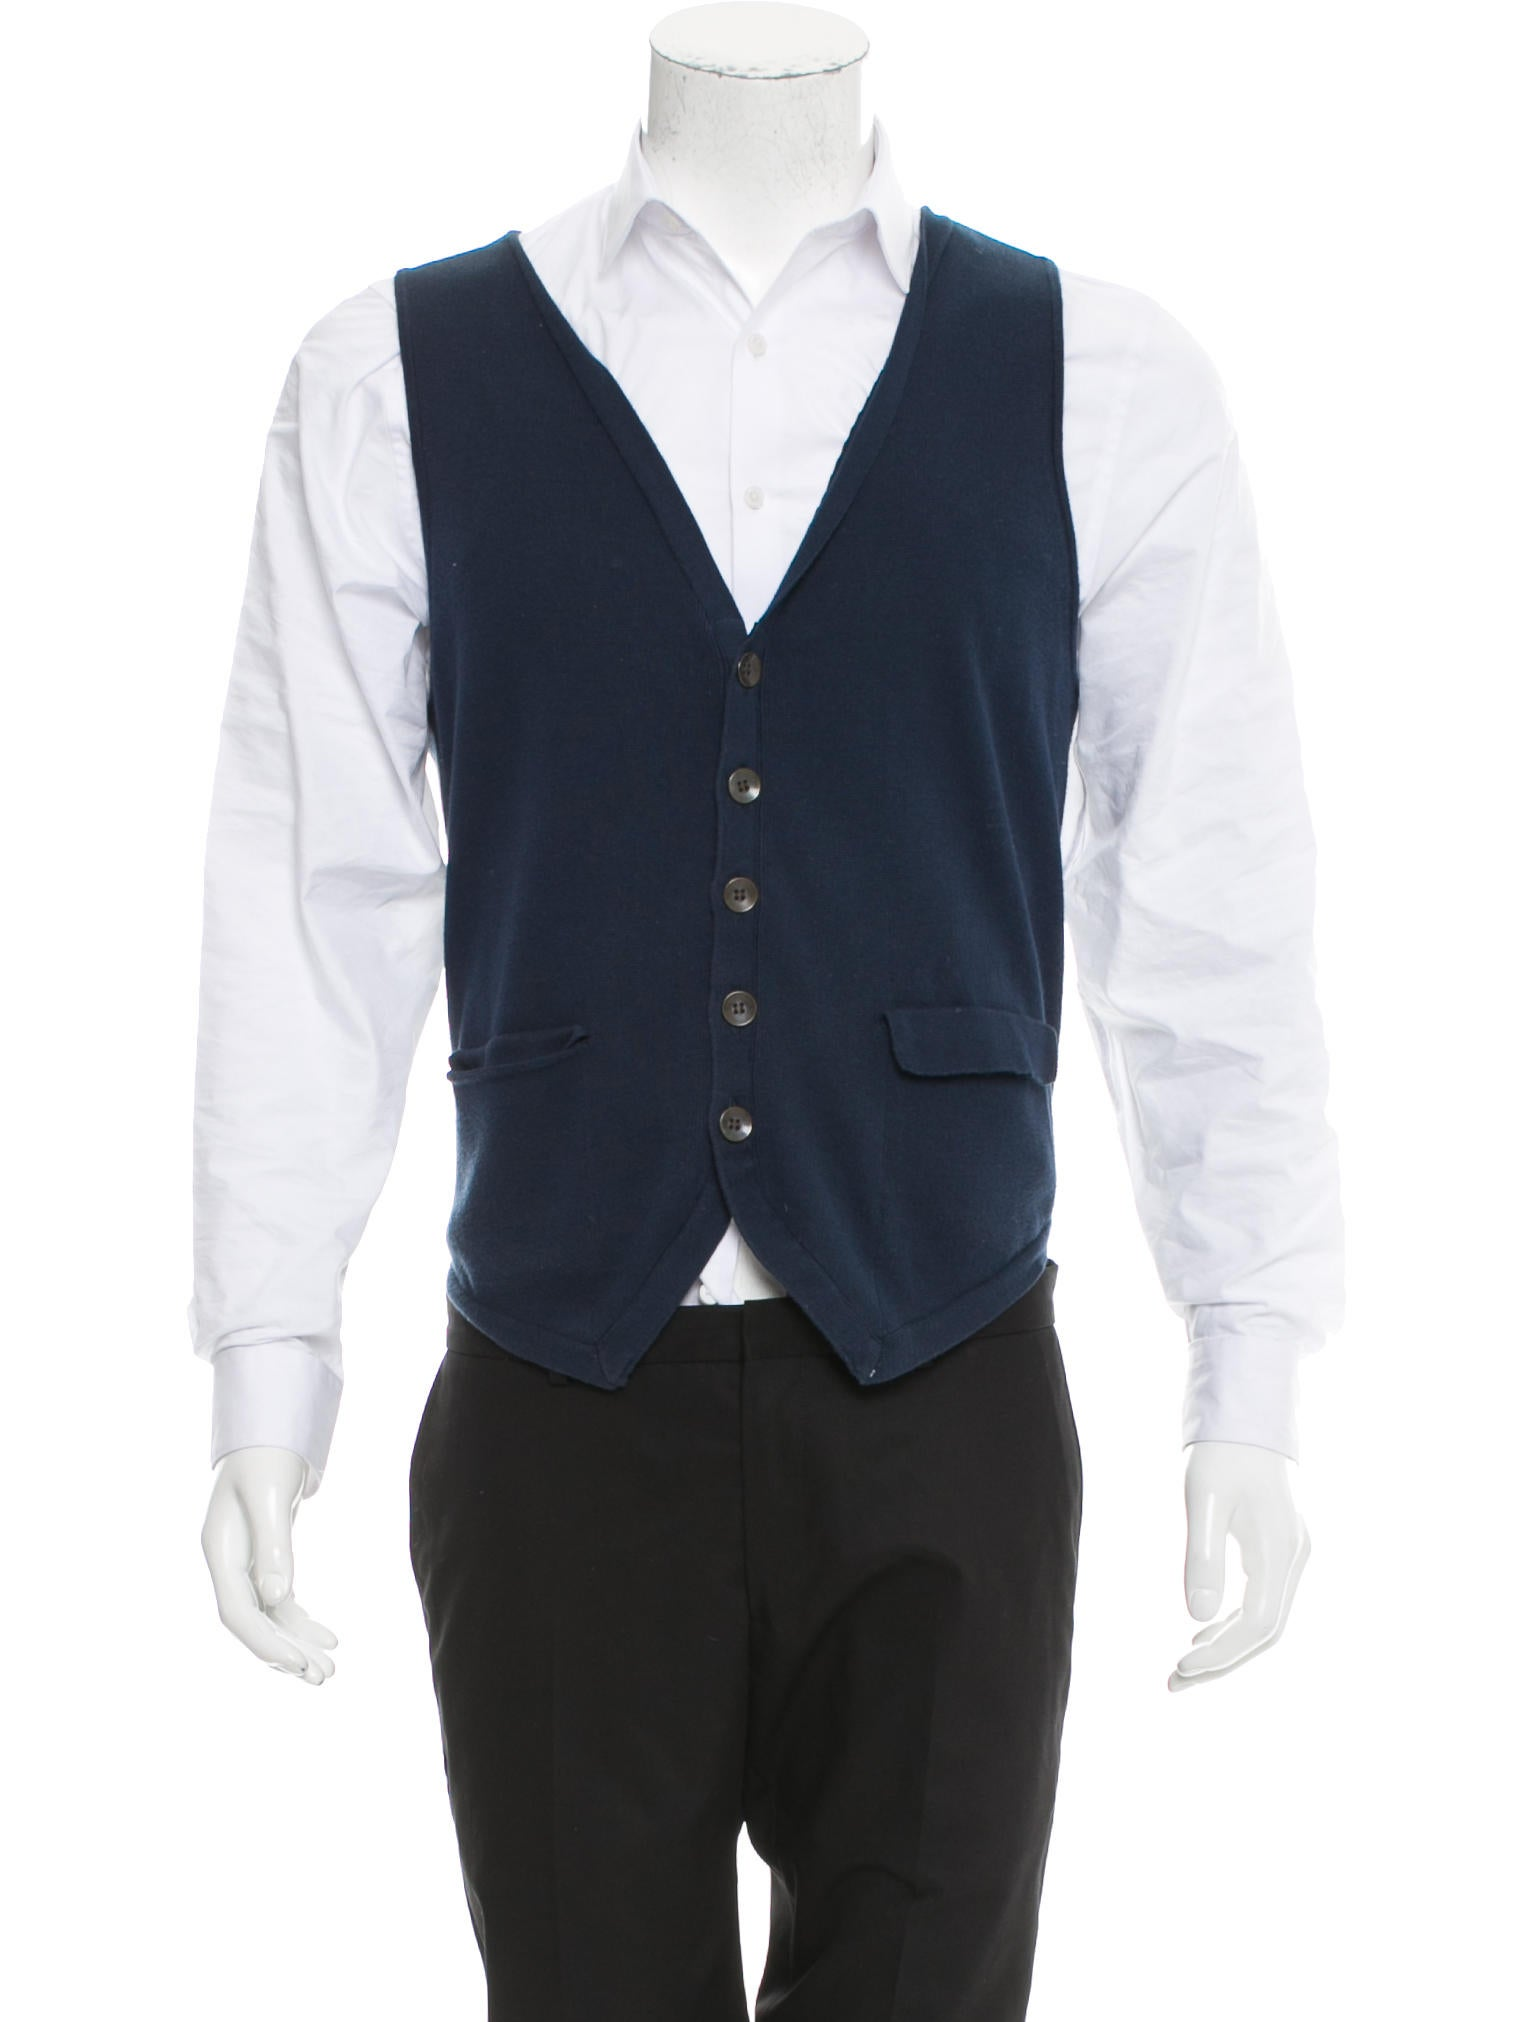 Rag & Bone Button-Up Sweater Vest - Clothing - WRAGB77363 | The ...